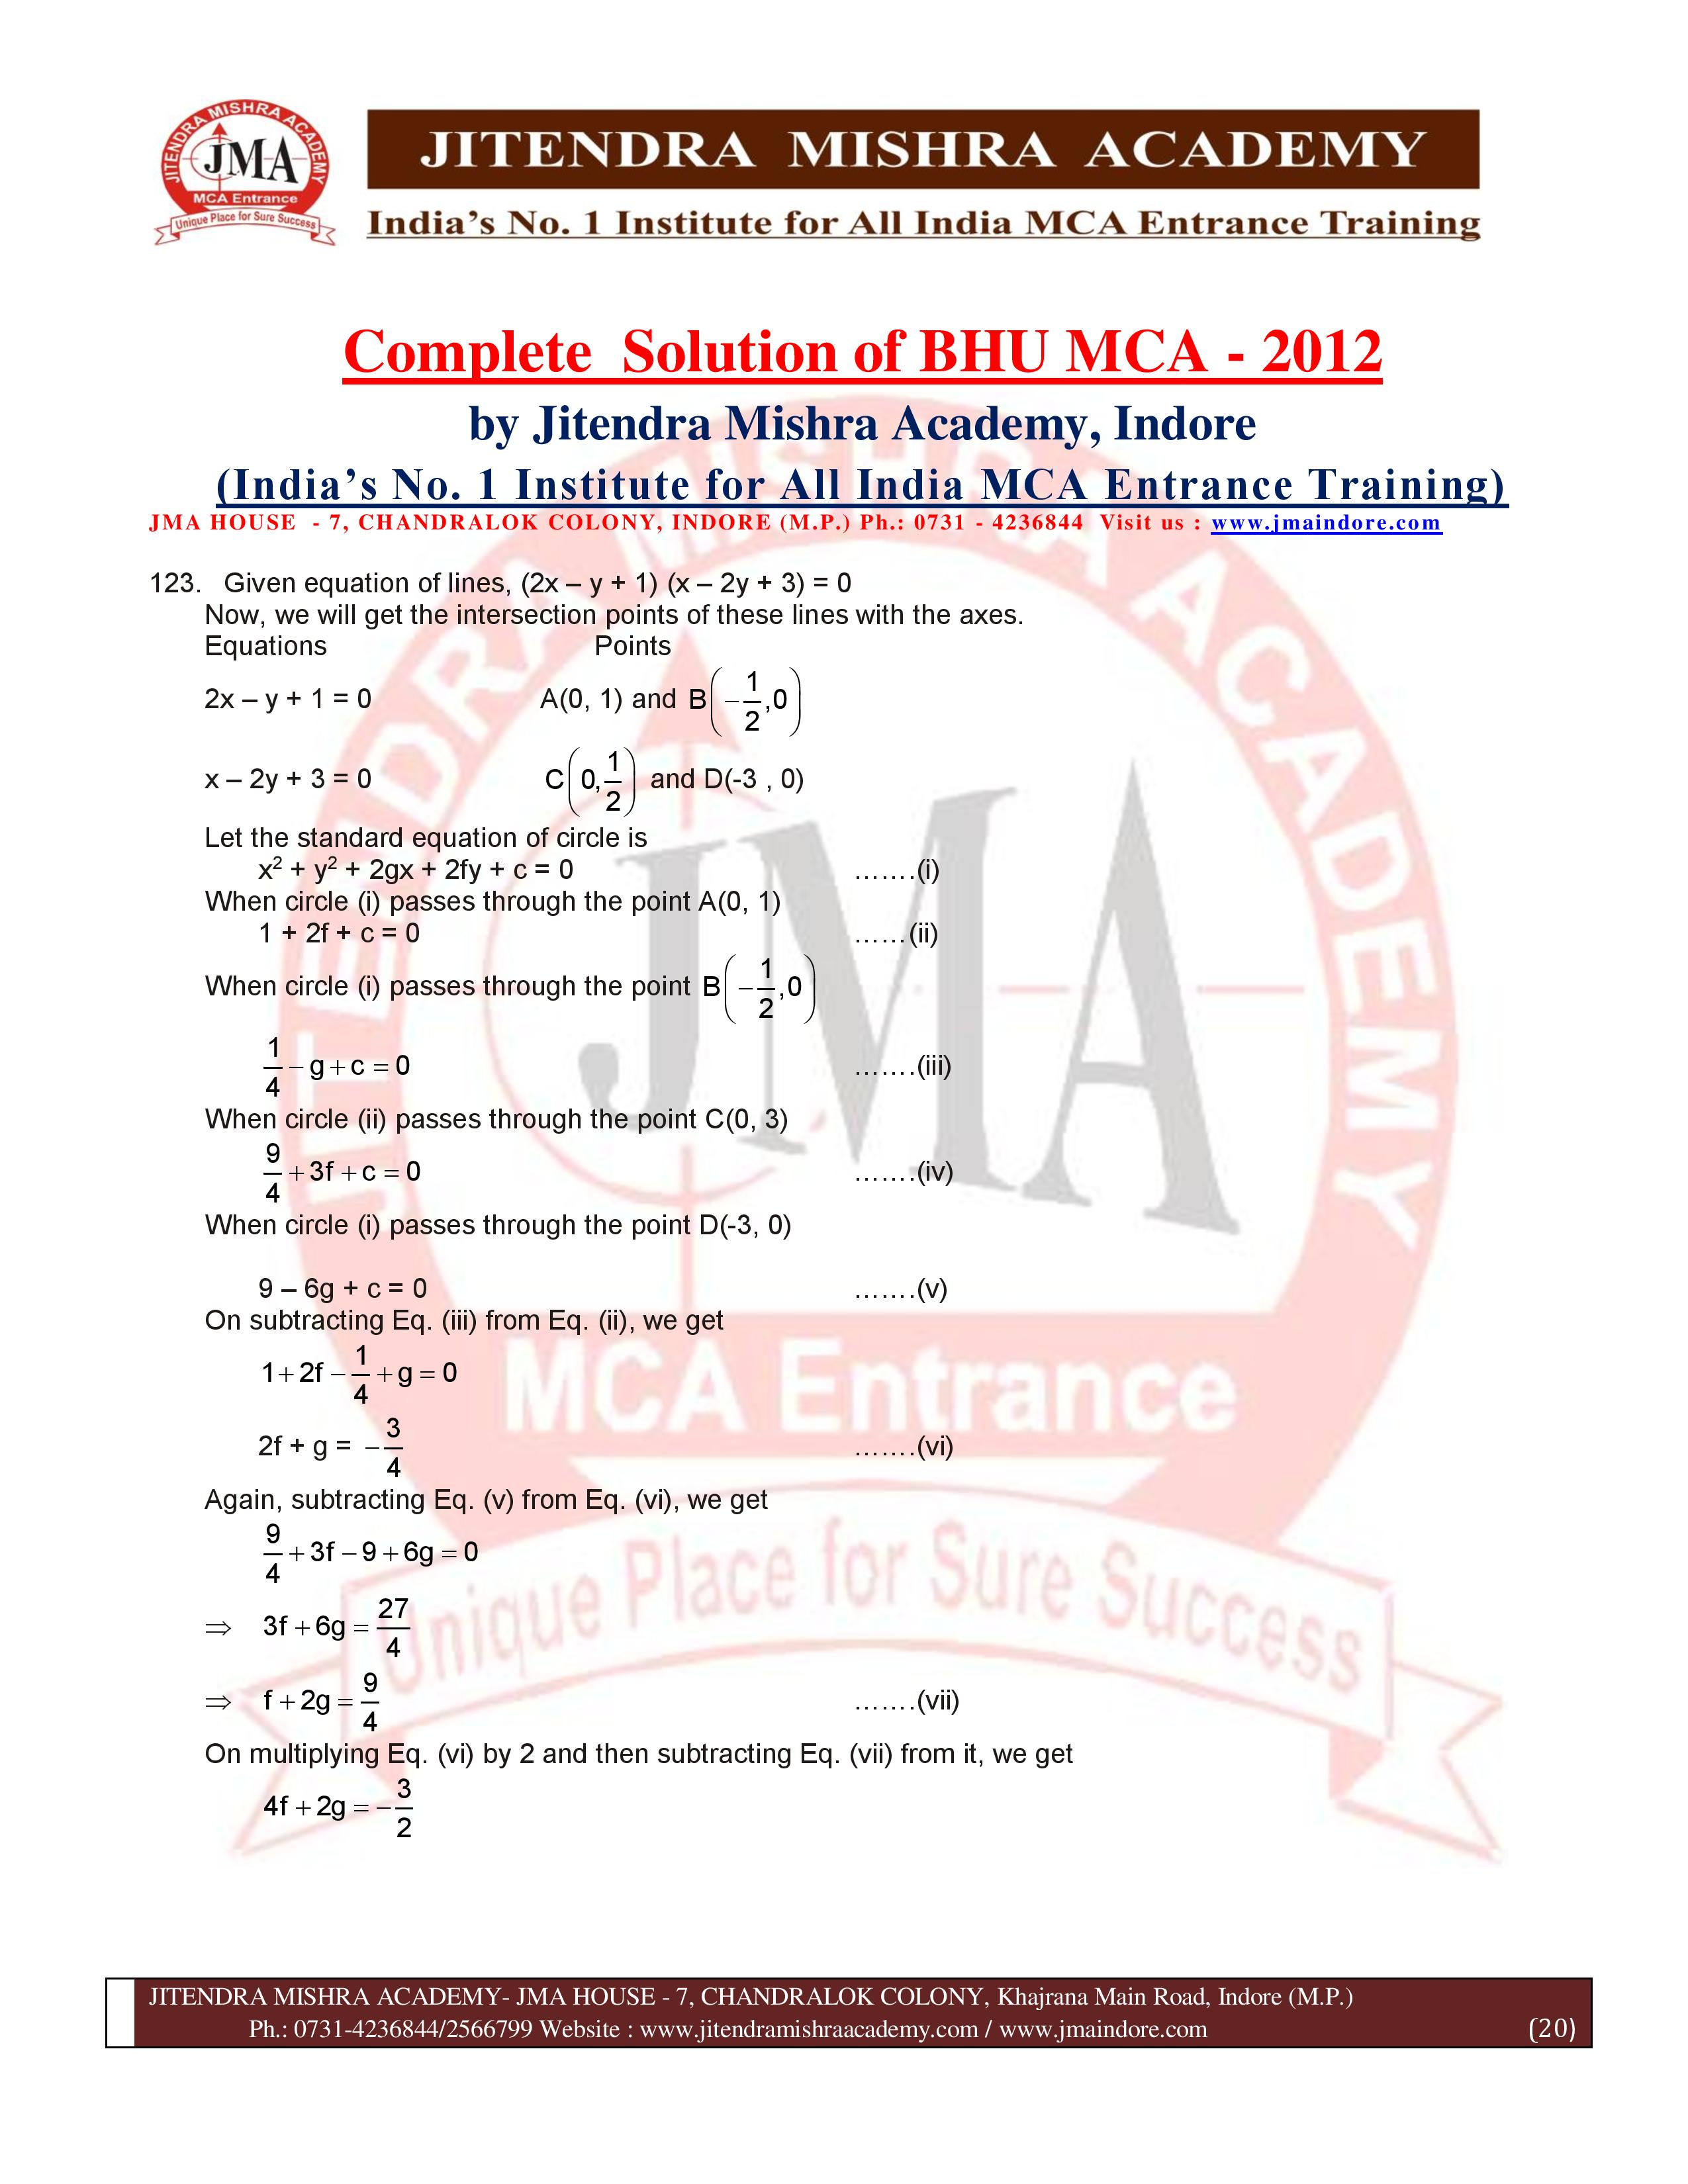 BHU 2012 SOLUTION (SET - 2) (07.07.16)-page-020